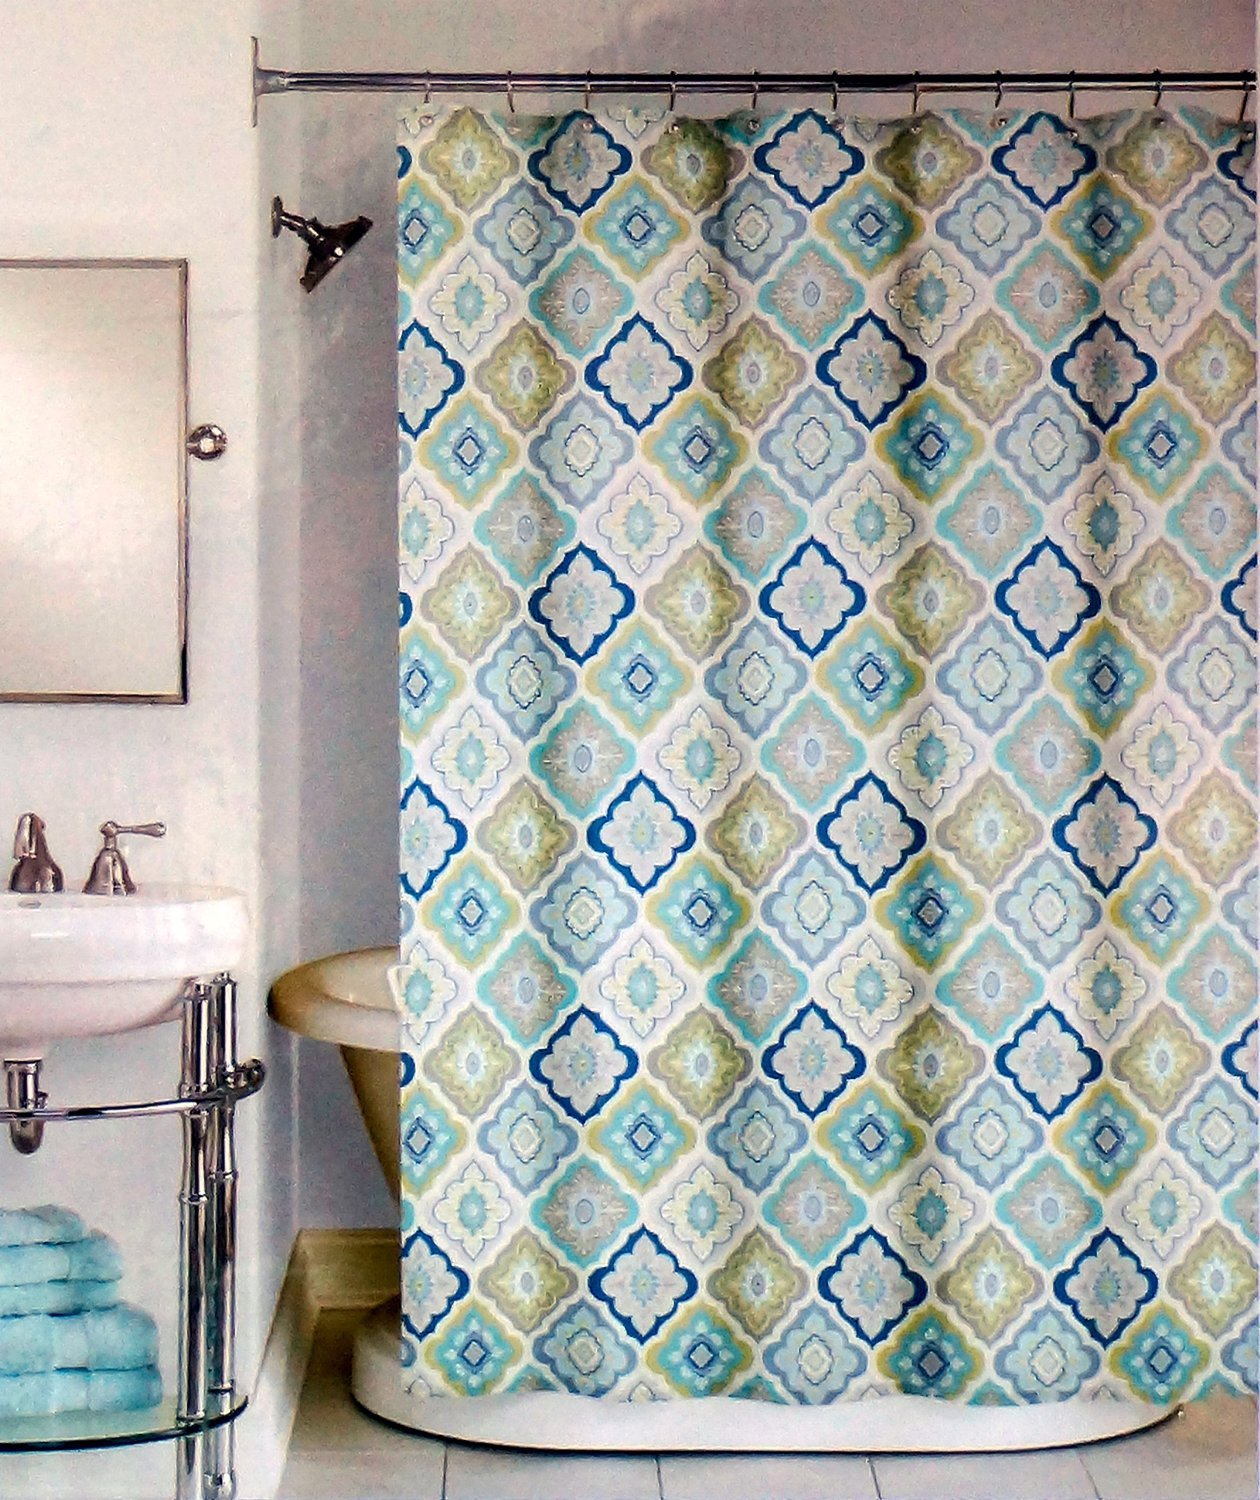 Amazon Peri Lilian Tile Fabric Shower Curtain In Shades Of Aqua Navy Taupe Olive Green White Home Kitchen